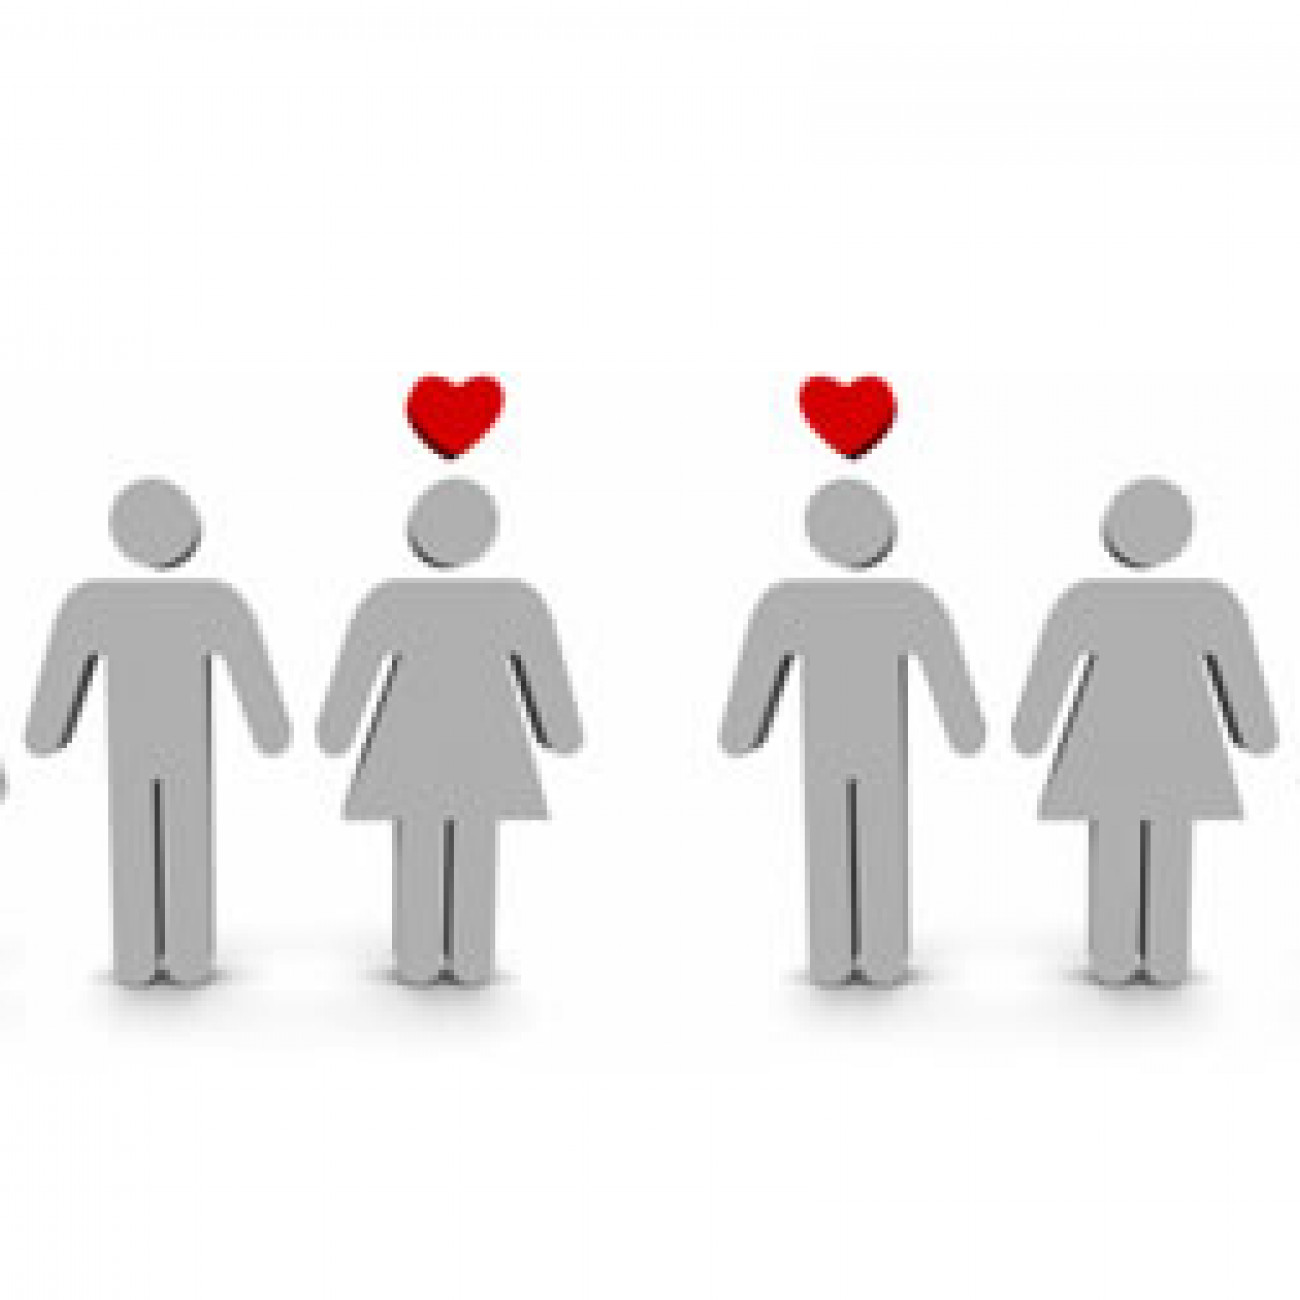 Communication on this topic: The Toll Divorce Can Take on Health, the-toll-divorce-can-take-on-health/